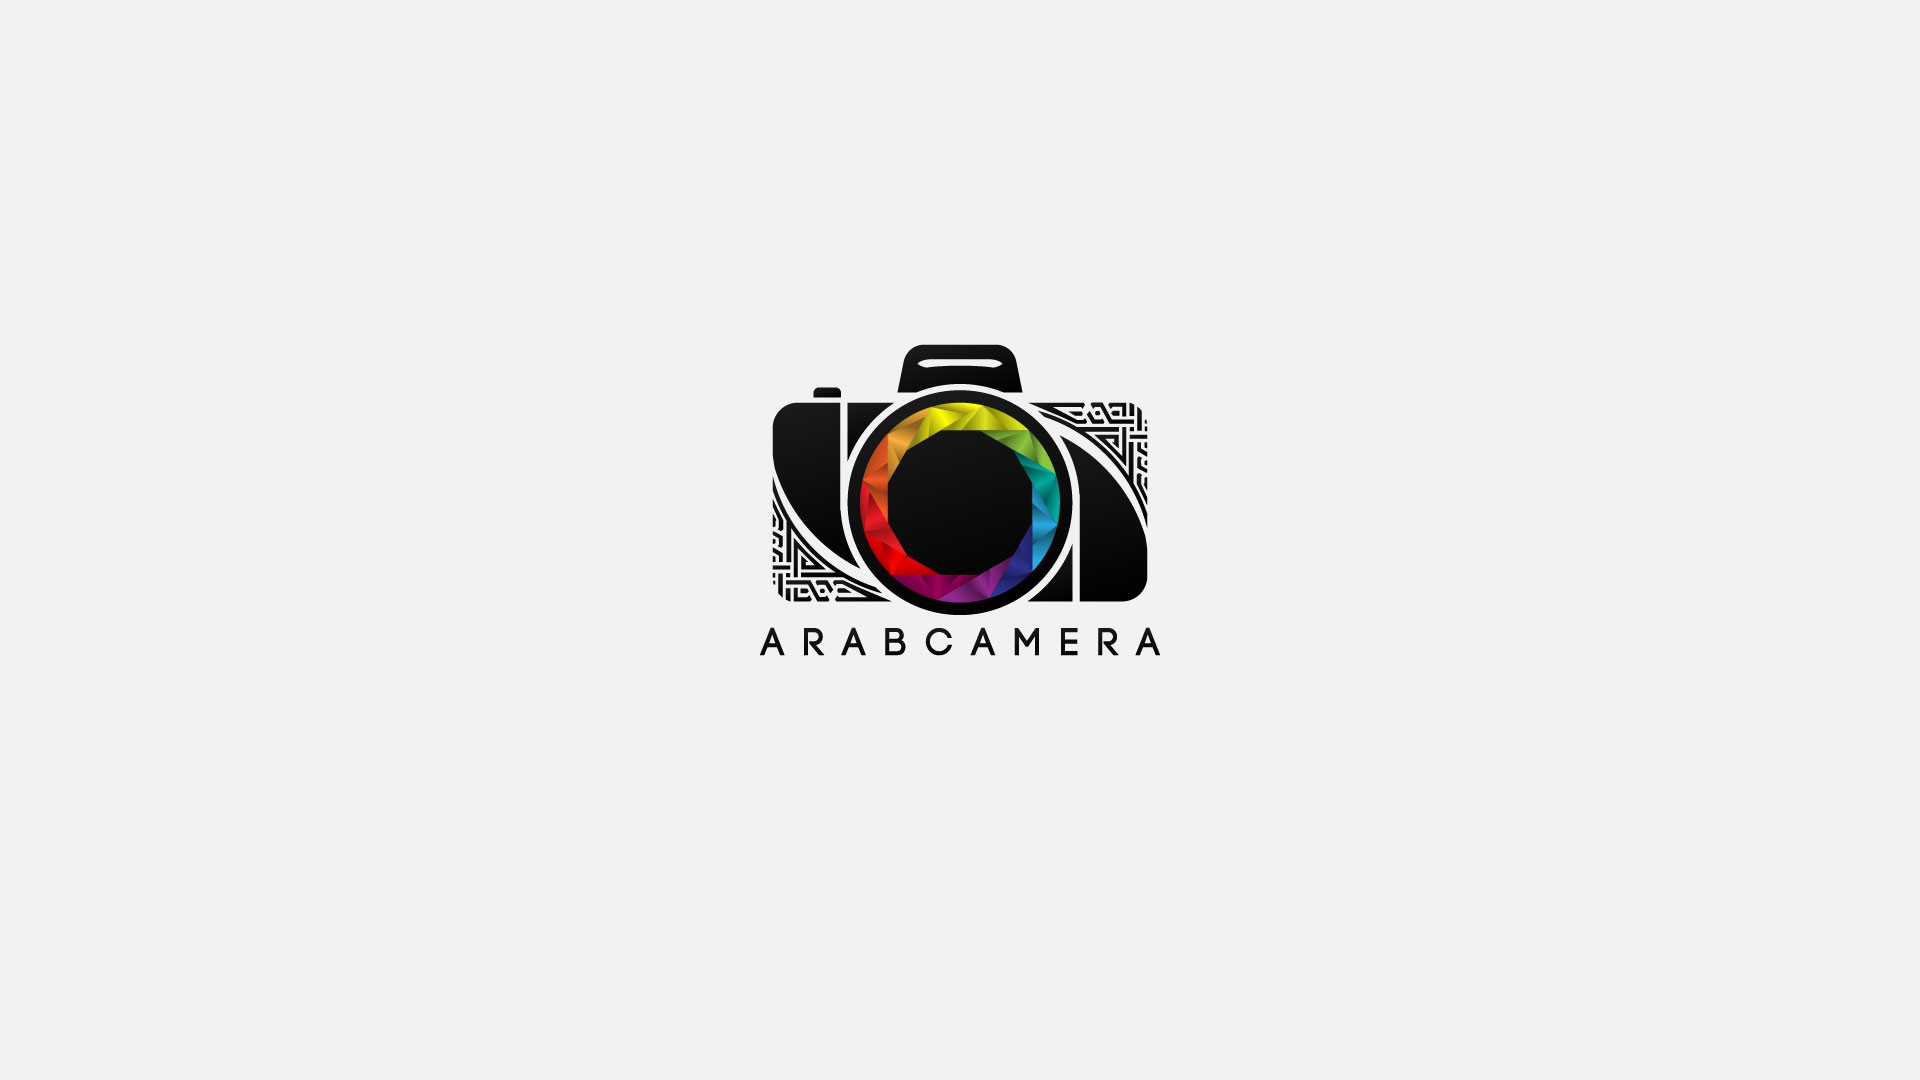 Create a logo for a website that teaches photography & photoshop